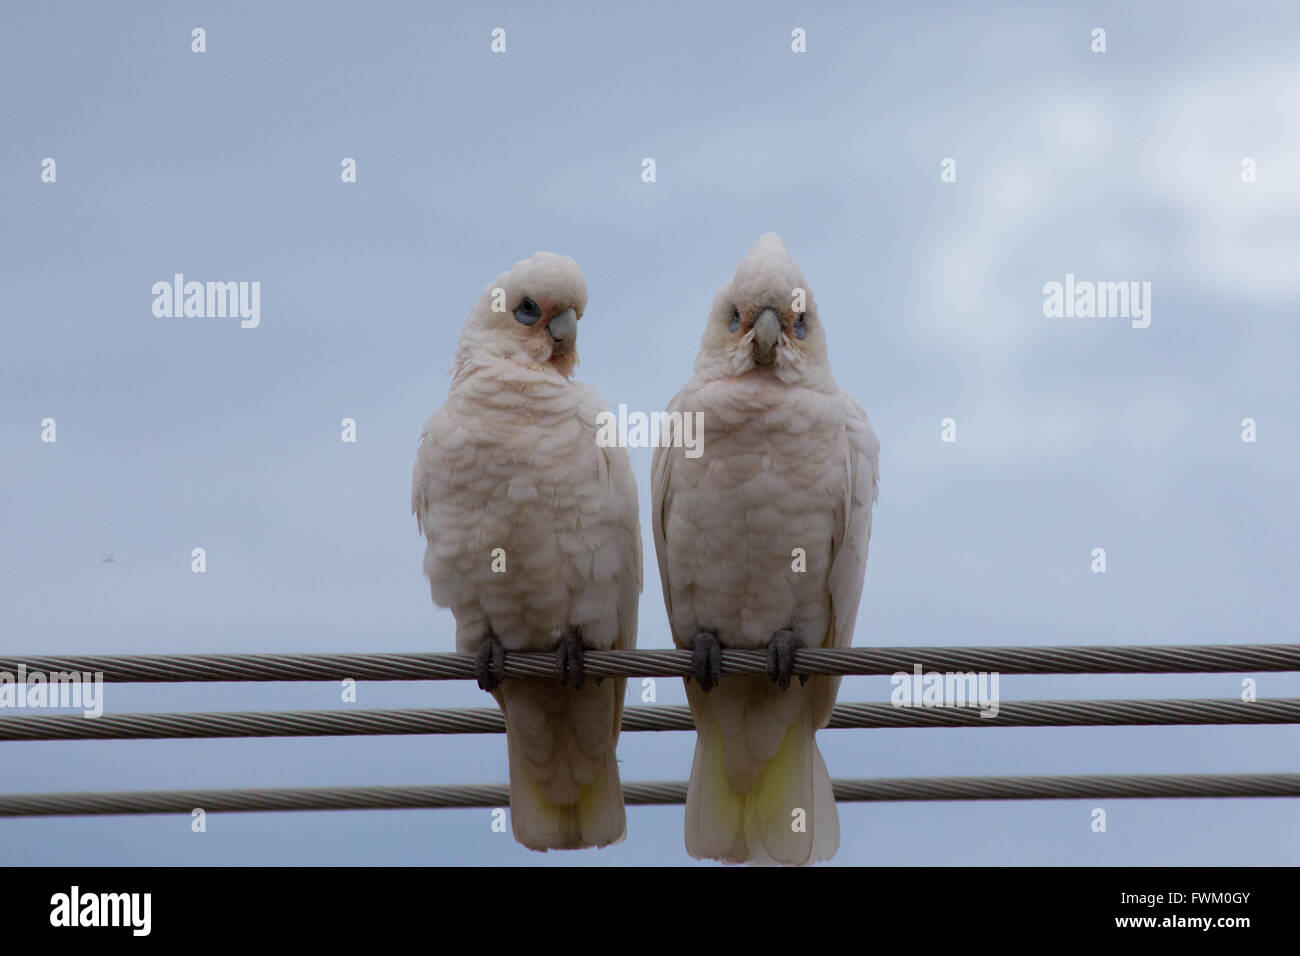 Low Angle View Of Little Corellas Perching On Cables Against Sky - Stock Image